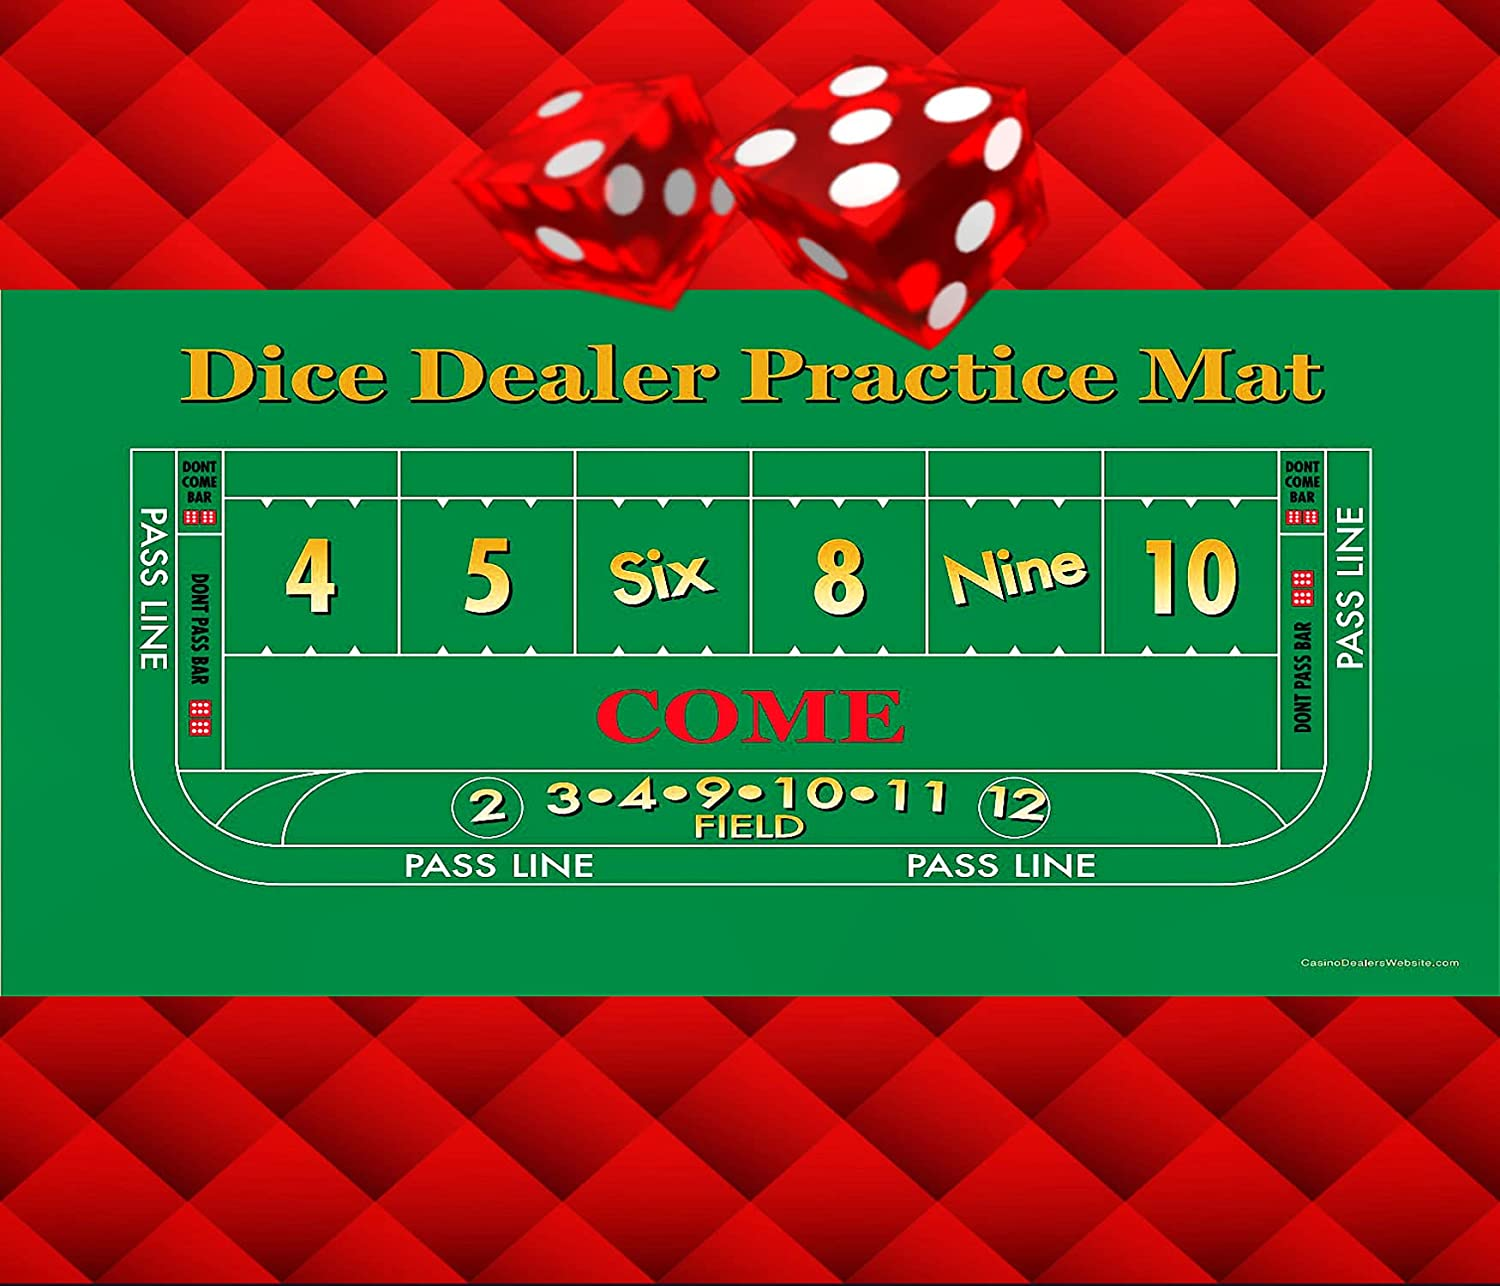 Dice Dealer Practice Mat お見舞い - Roll-up Quality 28